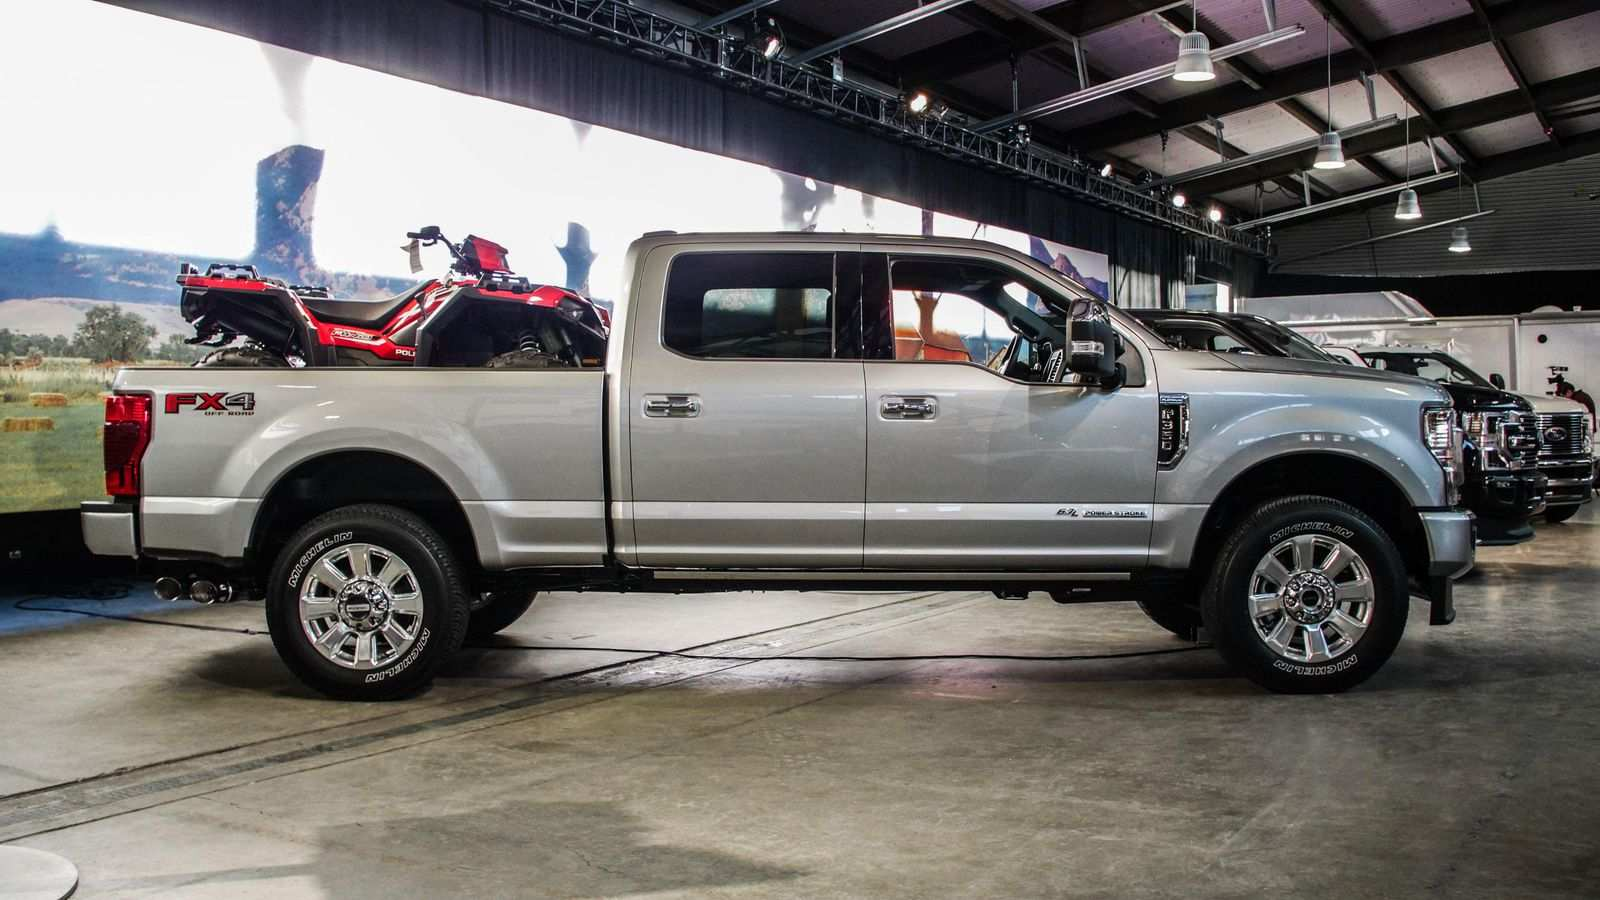 73 All New 2020 Ford F 150 Diesel Specs Exterior and Interior for 2020 Ford F 150 Diesel Specs